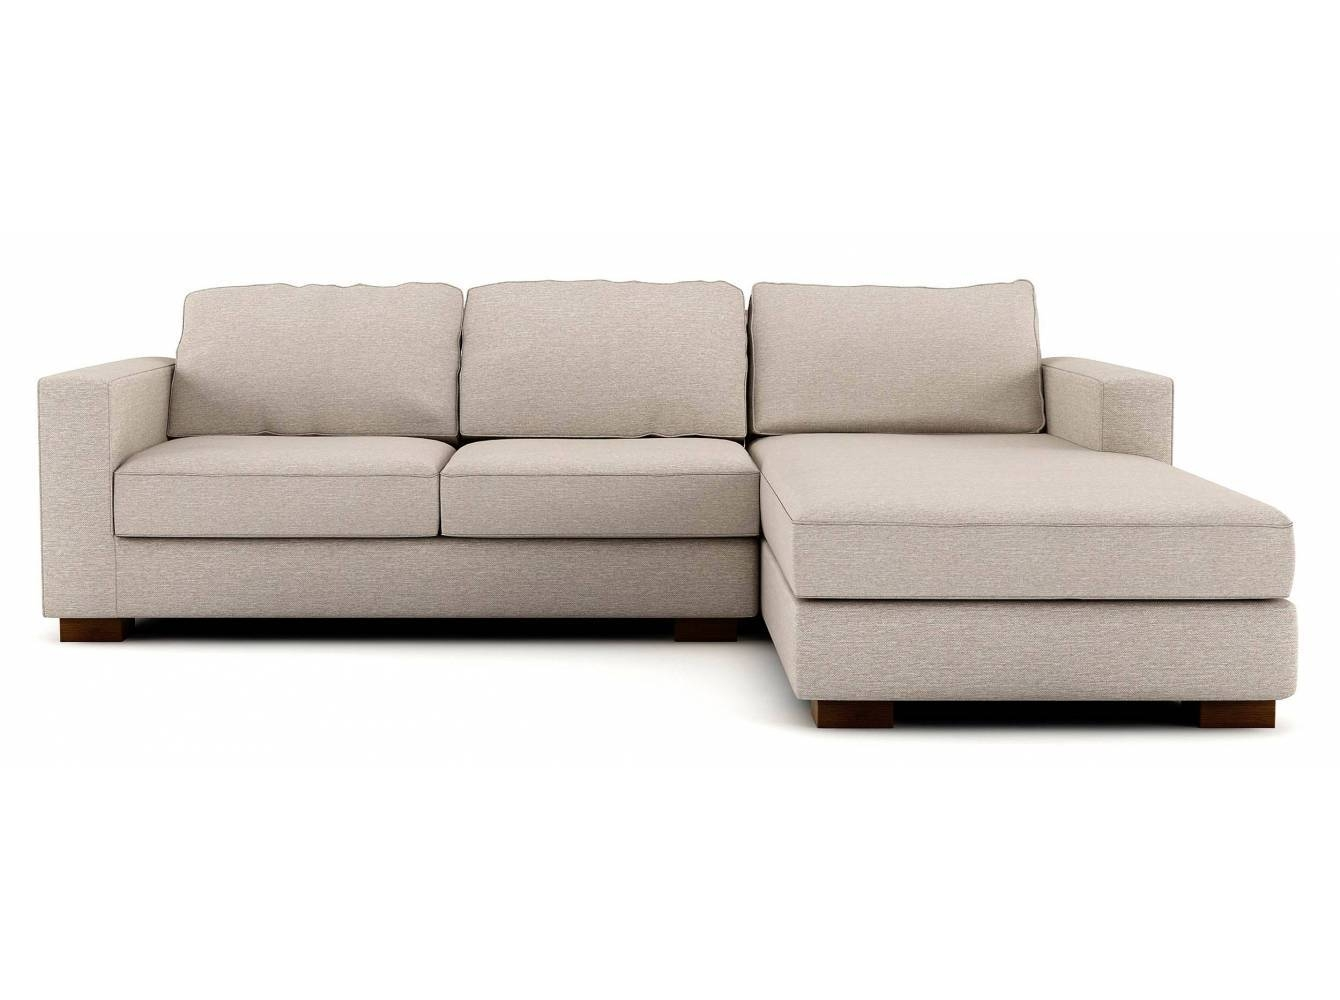 Rio Chaise Sectional - Stem throughout Eco Friendly Sectional Sofa (Image 27 of 30)